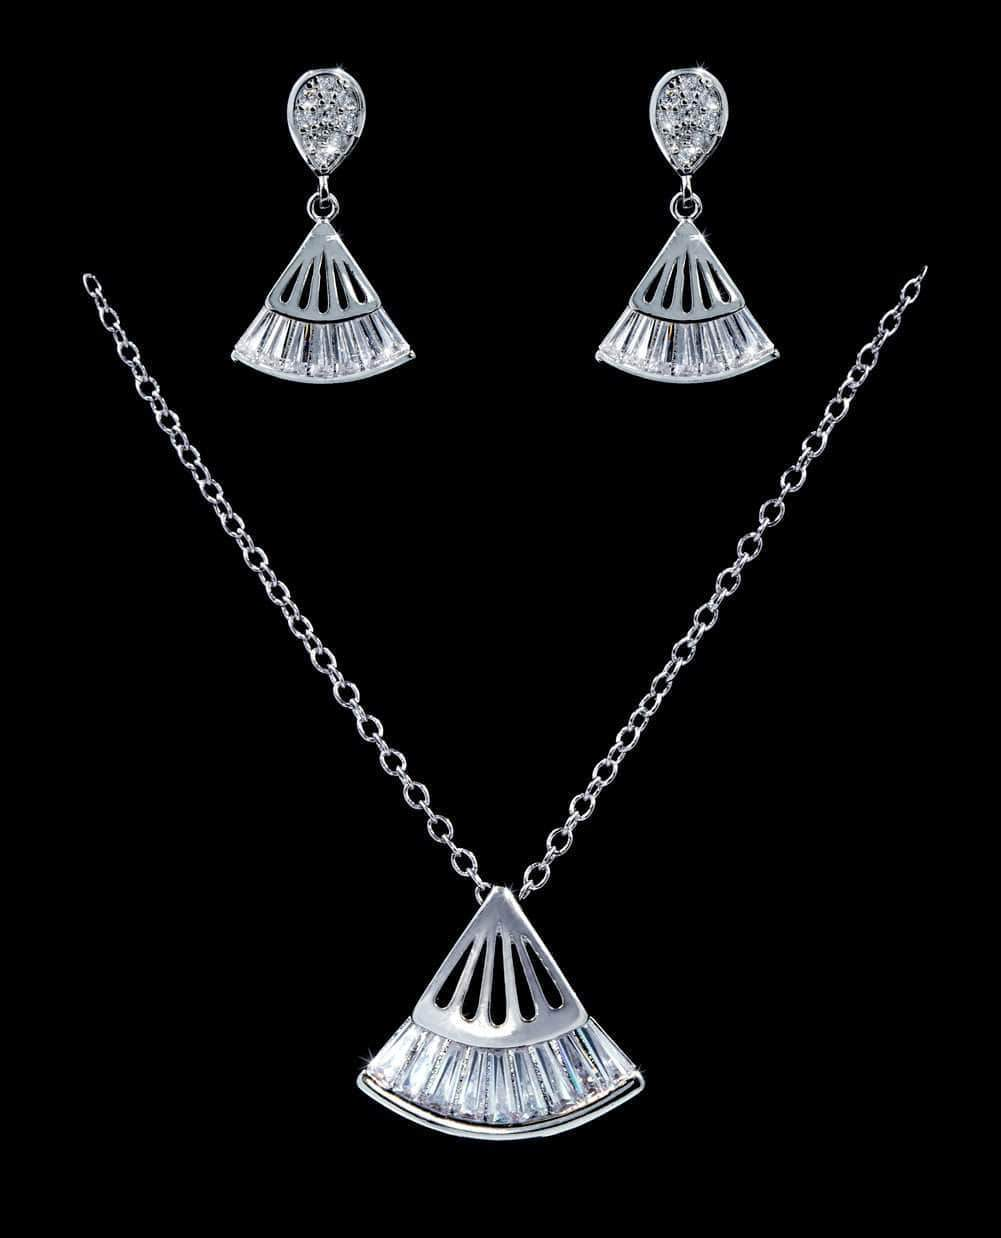 Necklace Sets - Low price #16813 - Fan Drop CZ Necklace and Earring Set